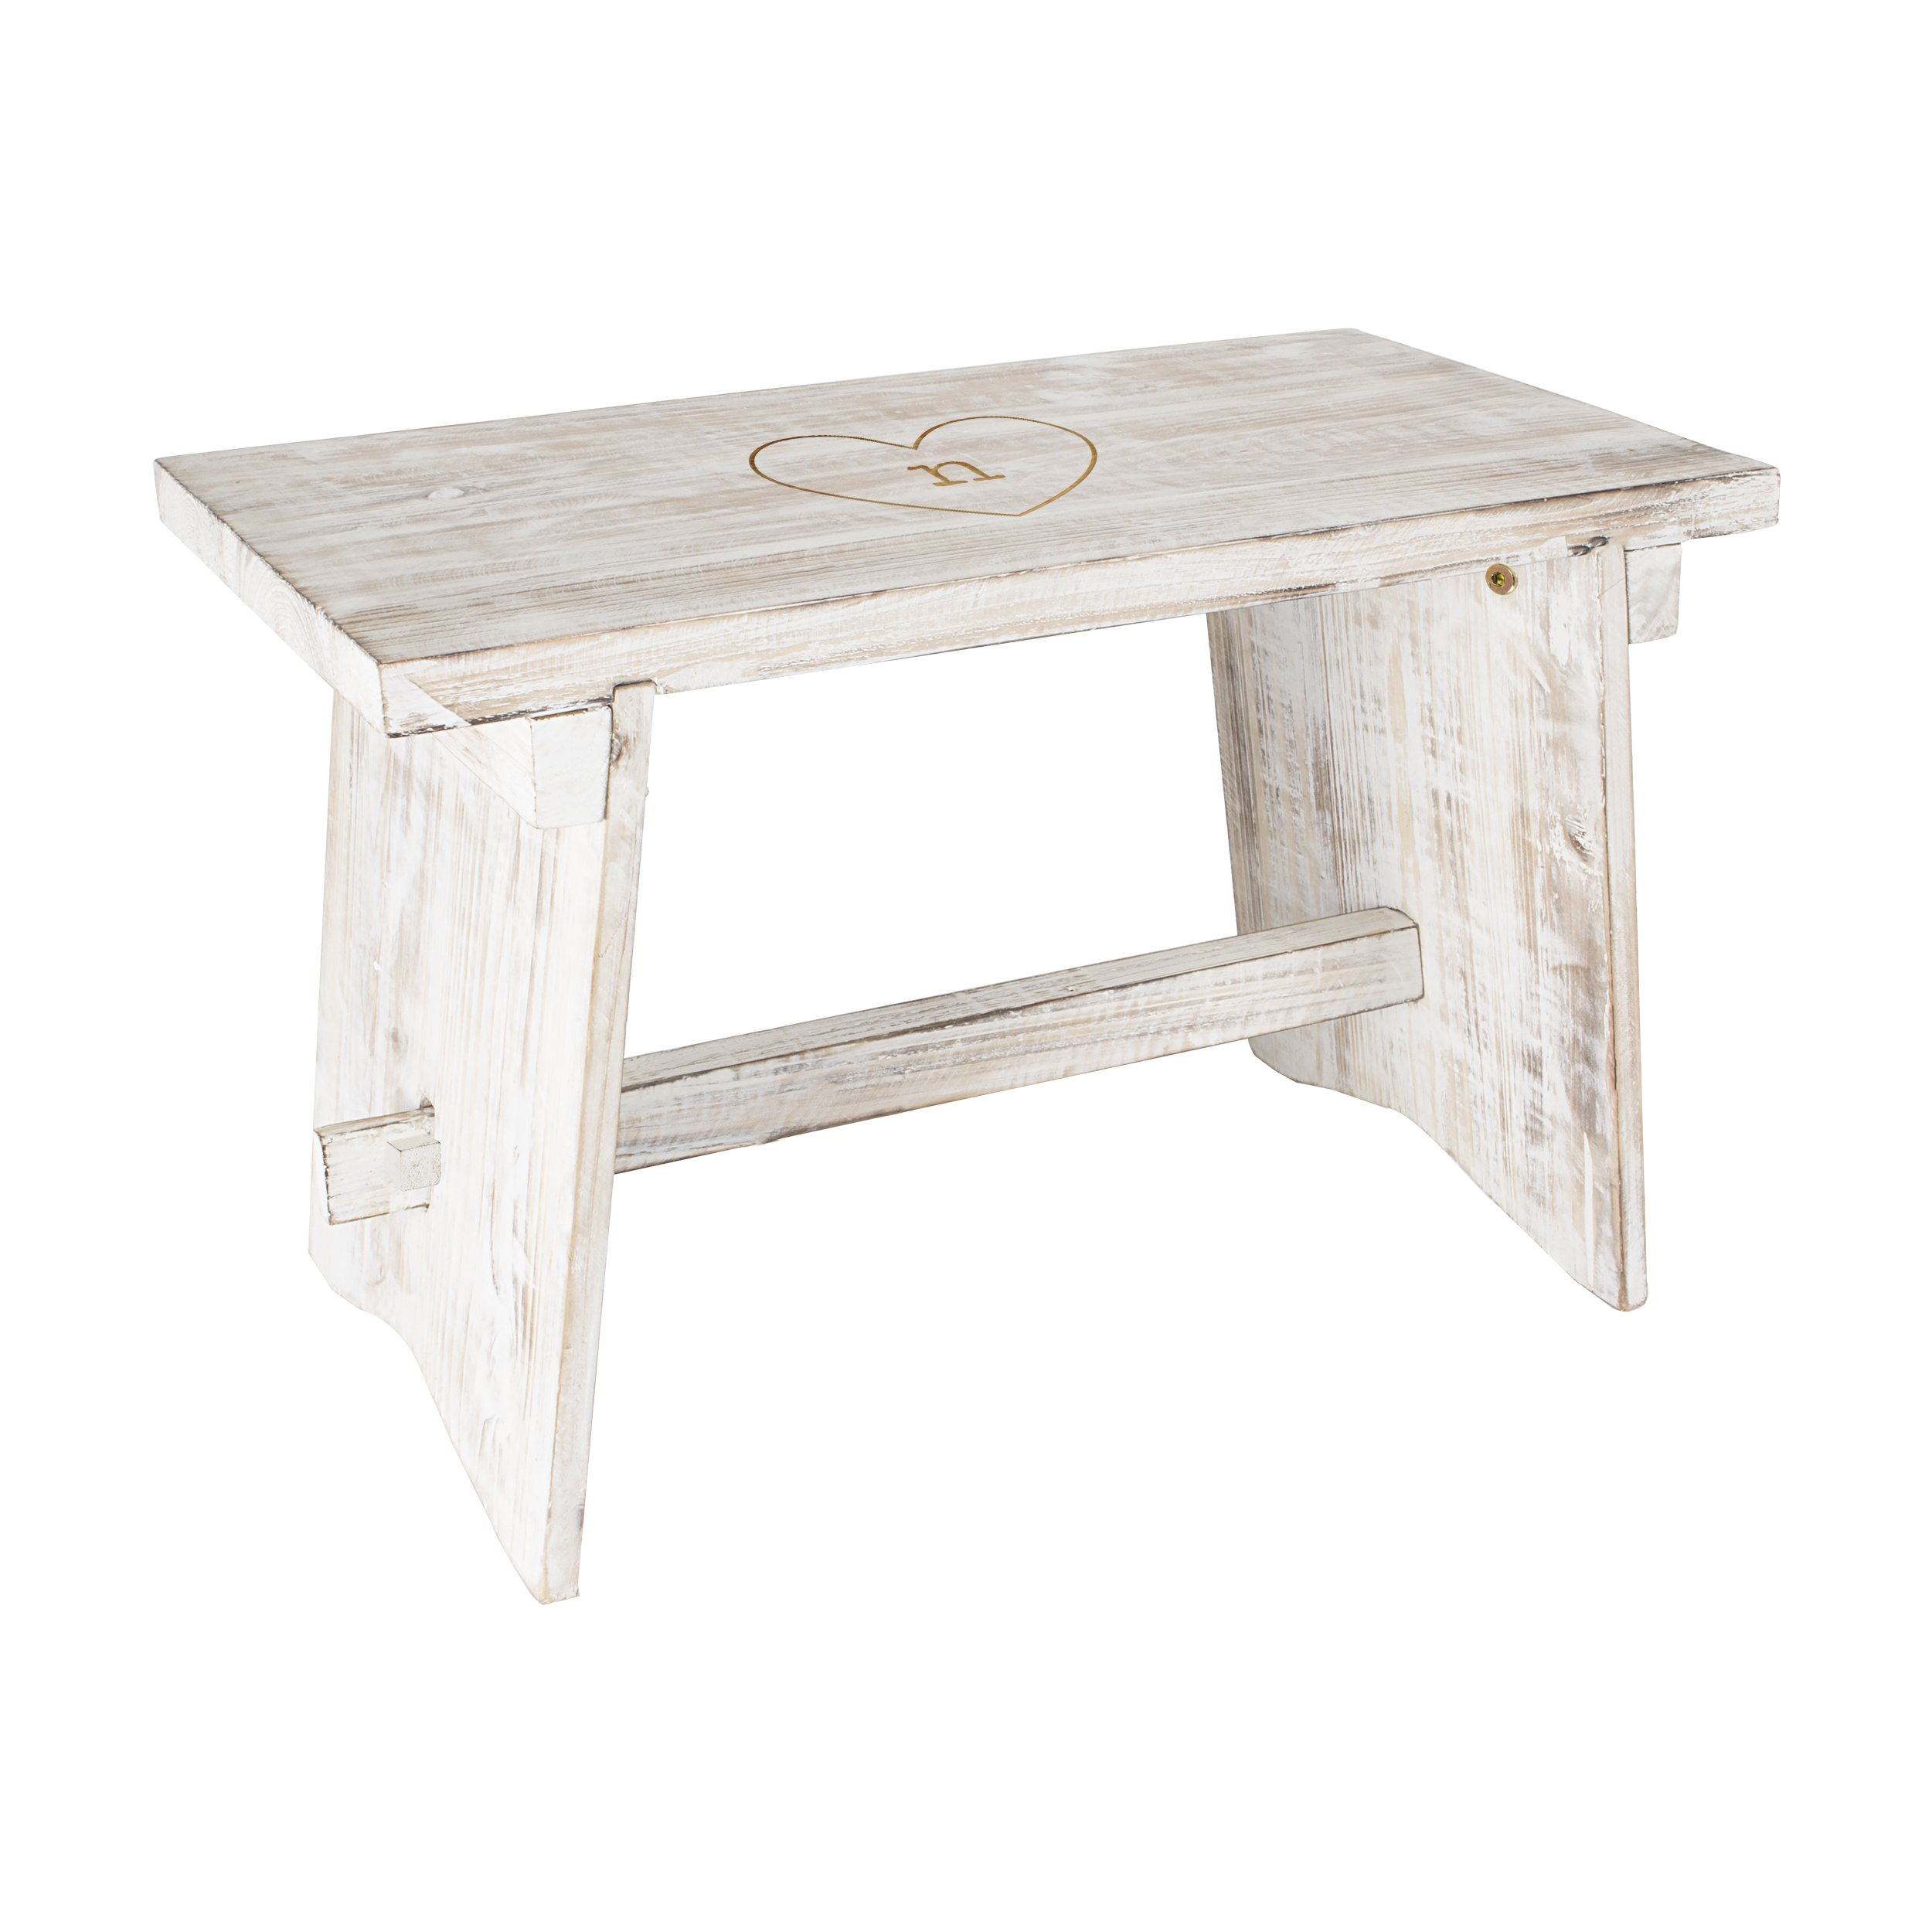 Cathy's Concepts HRT-3950-N Personalized Heart Rustic Wooden Guestbook Bench by Cathy's Concepts